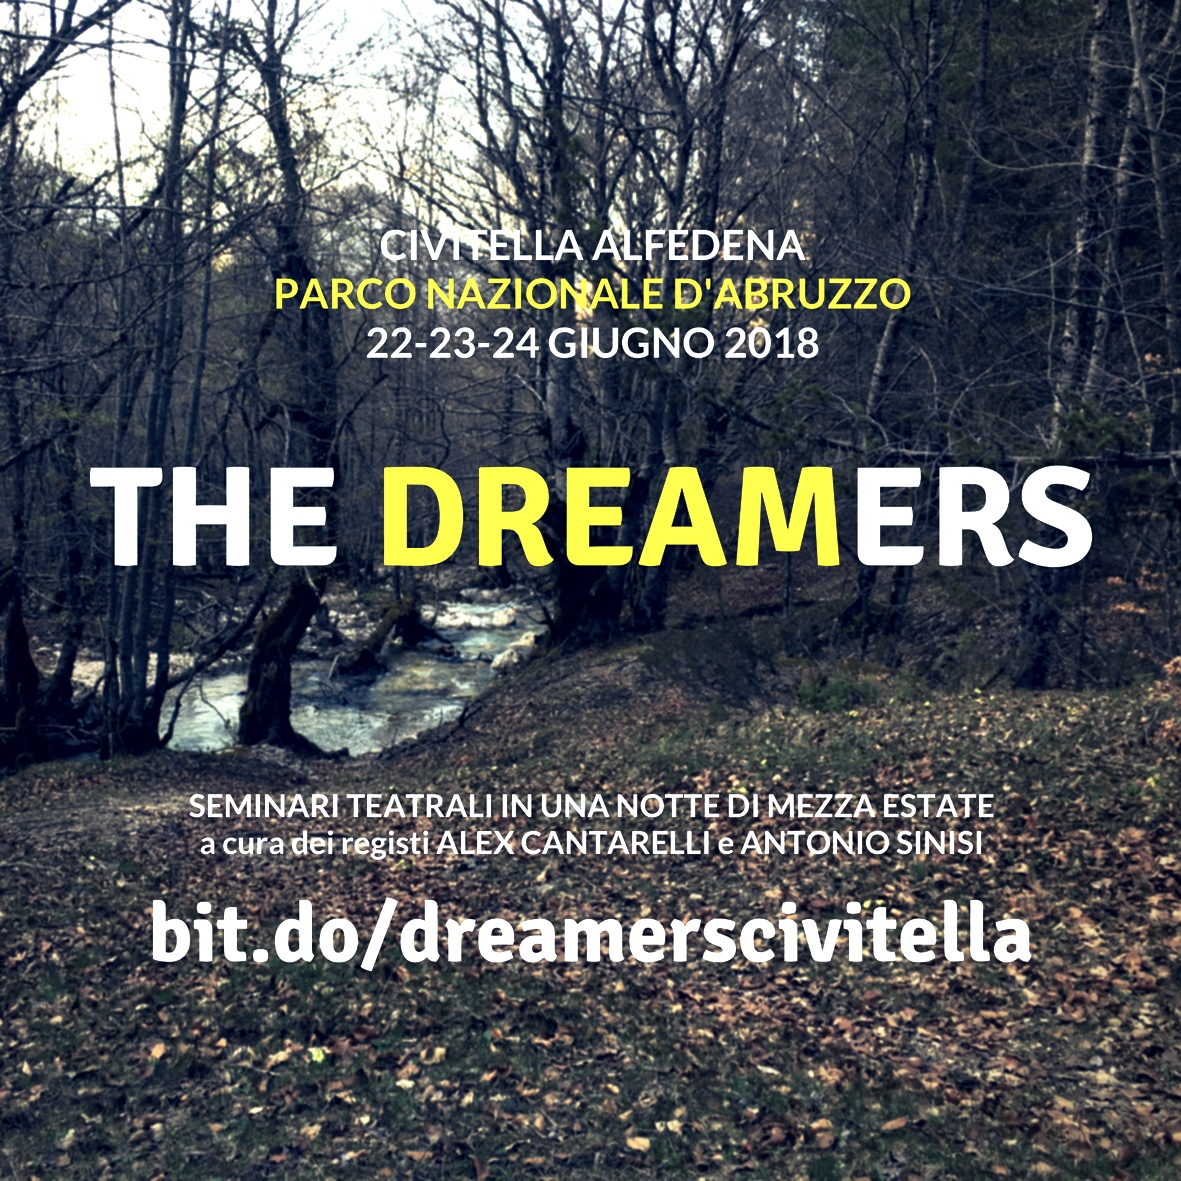 THE DREAMERS site